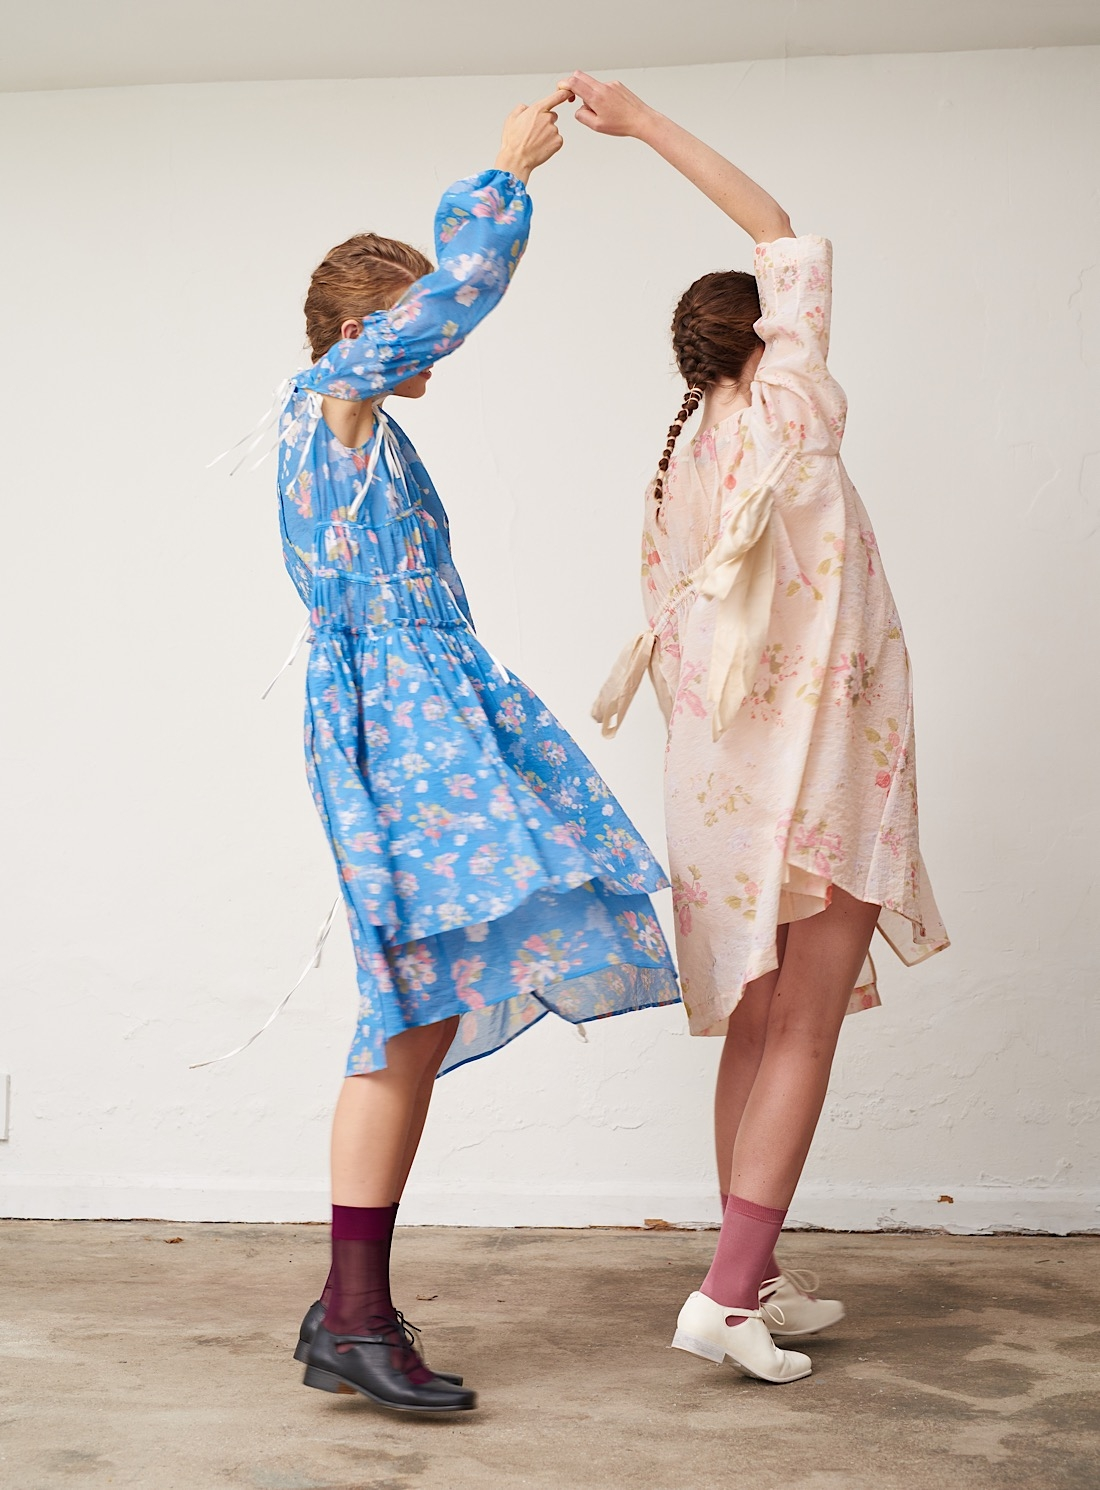 24114-young-british-designers-blue-fruit-and-floral-dress-by-renli-su_raw.jpg